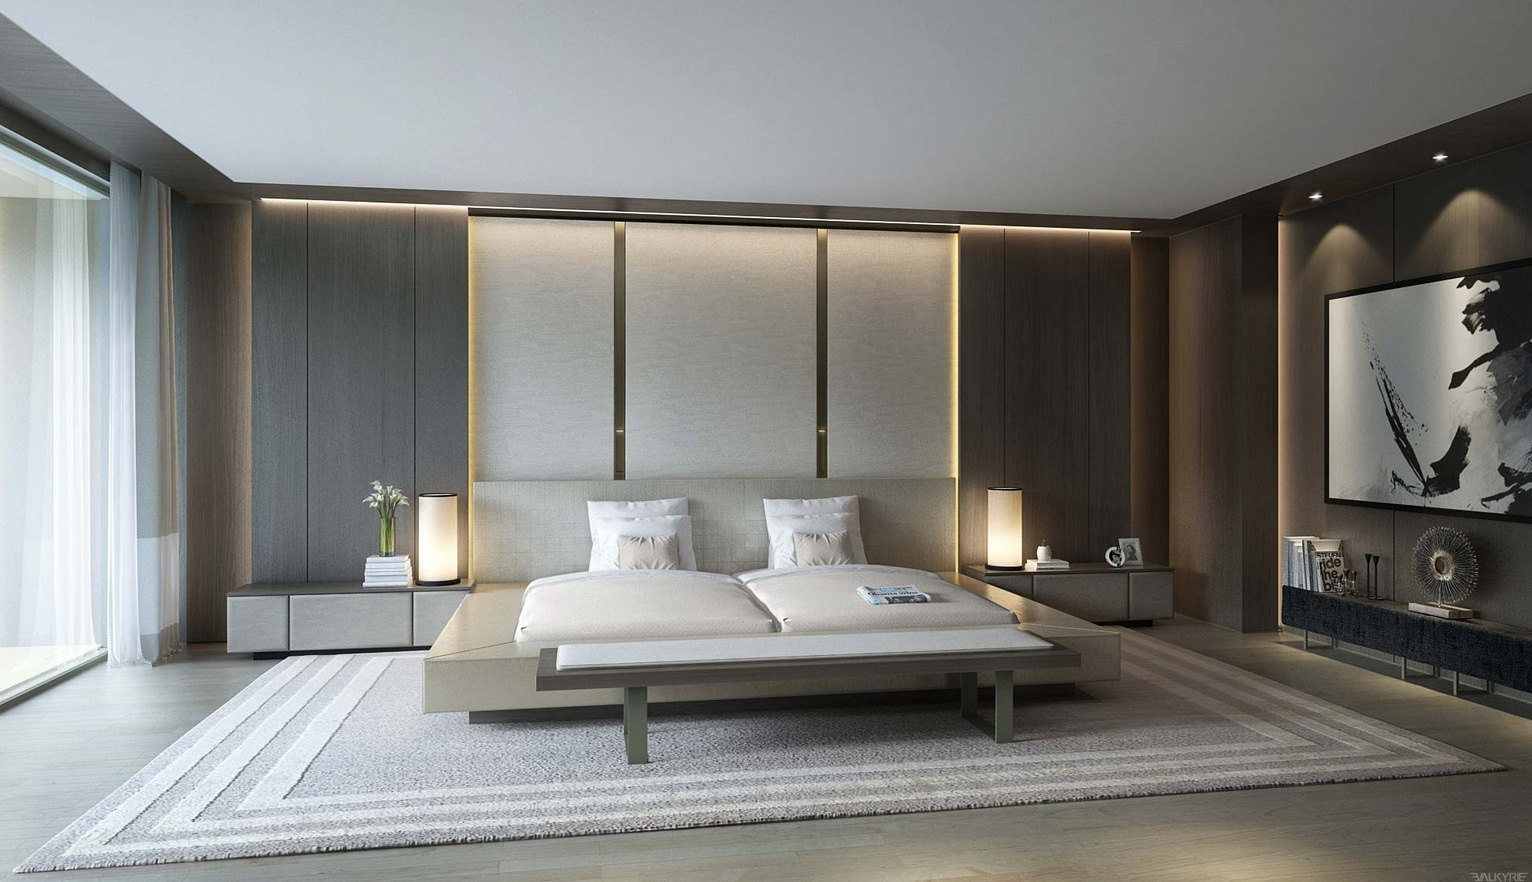 21 Cool Bedrooms For Clean And Simple Design Inspiration: photos of bedroom designs